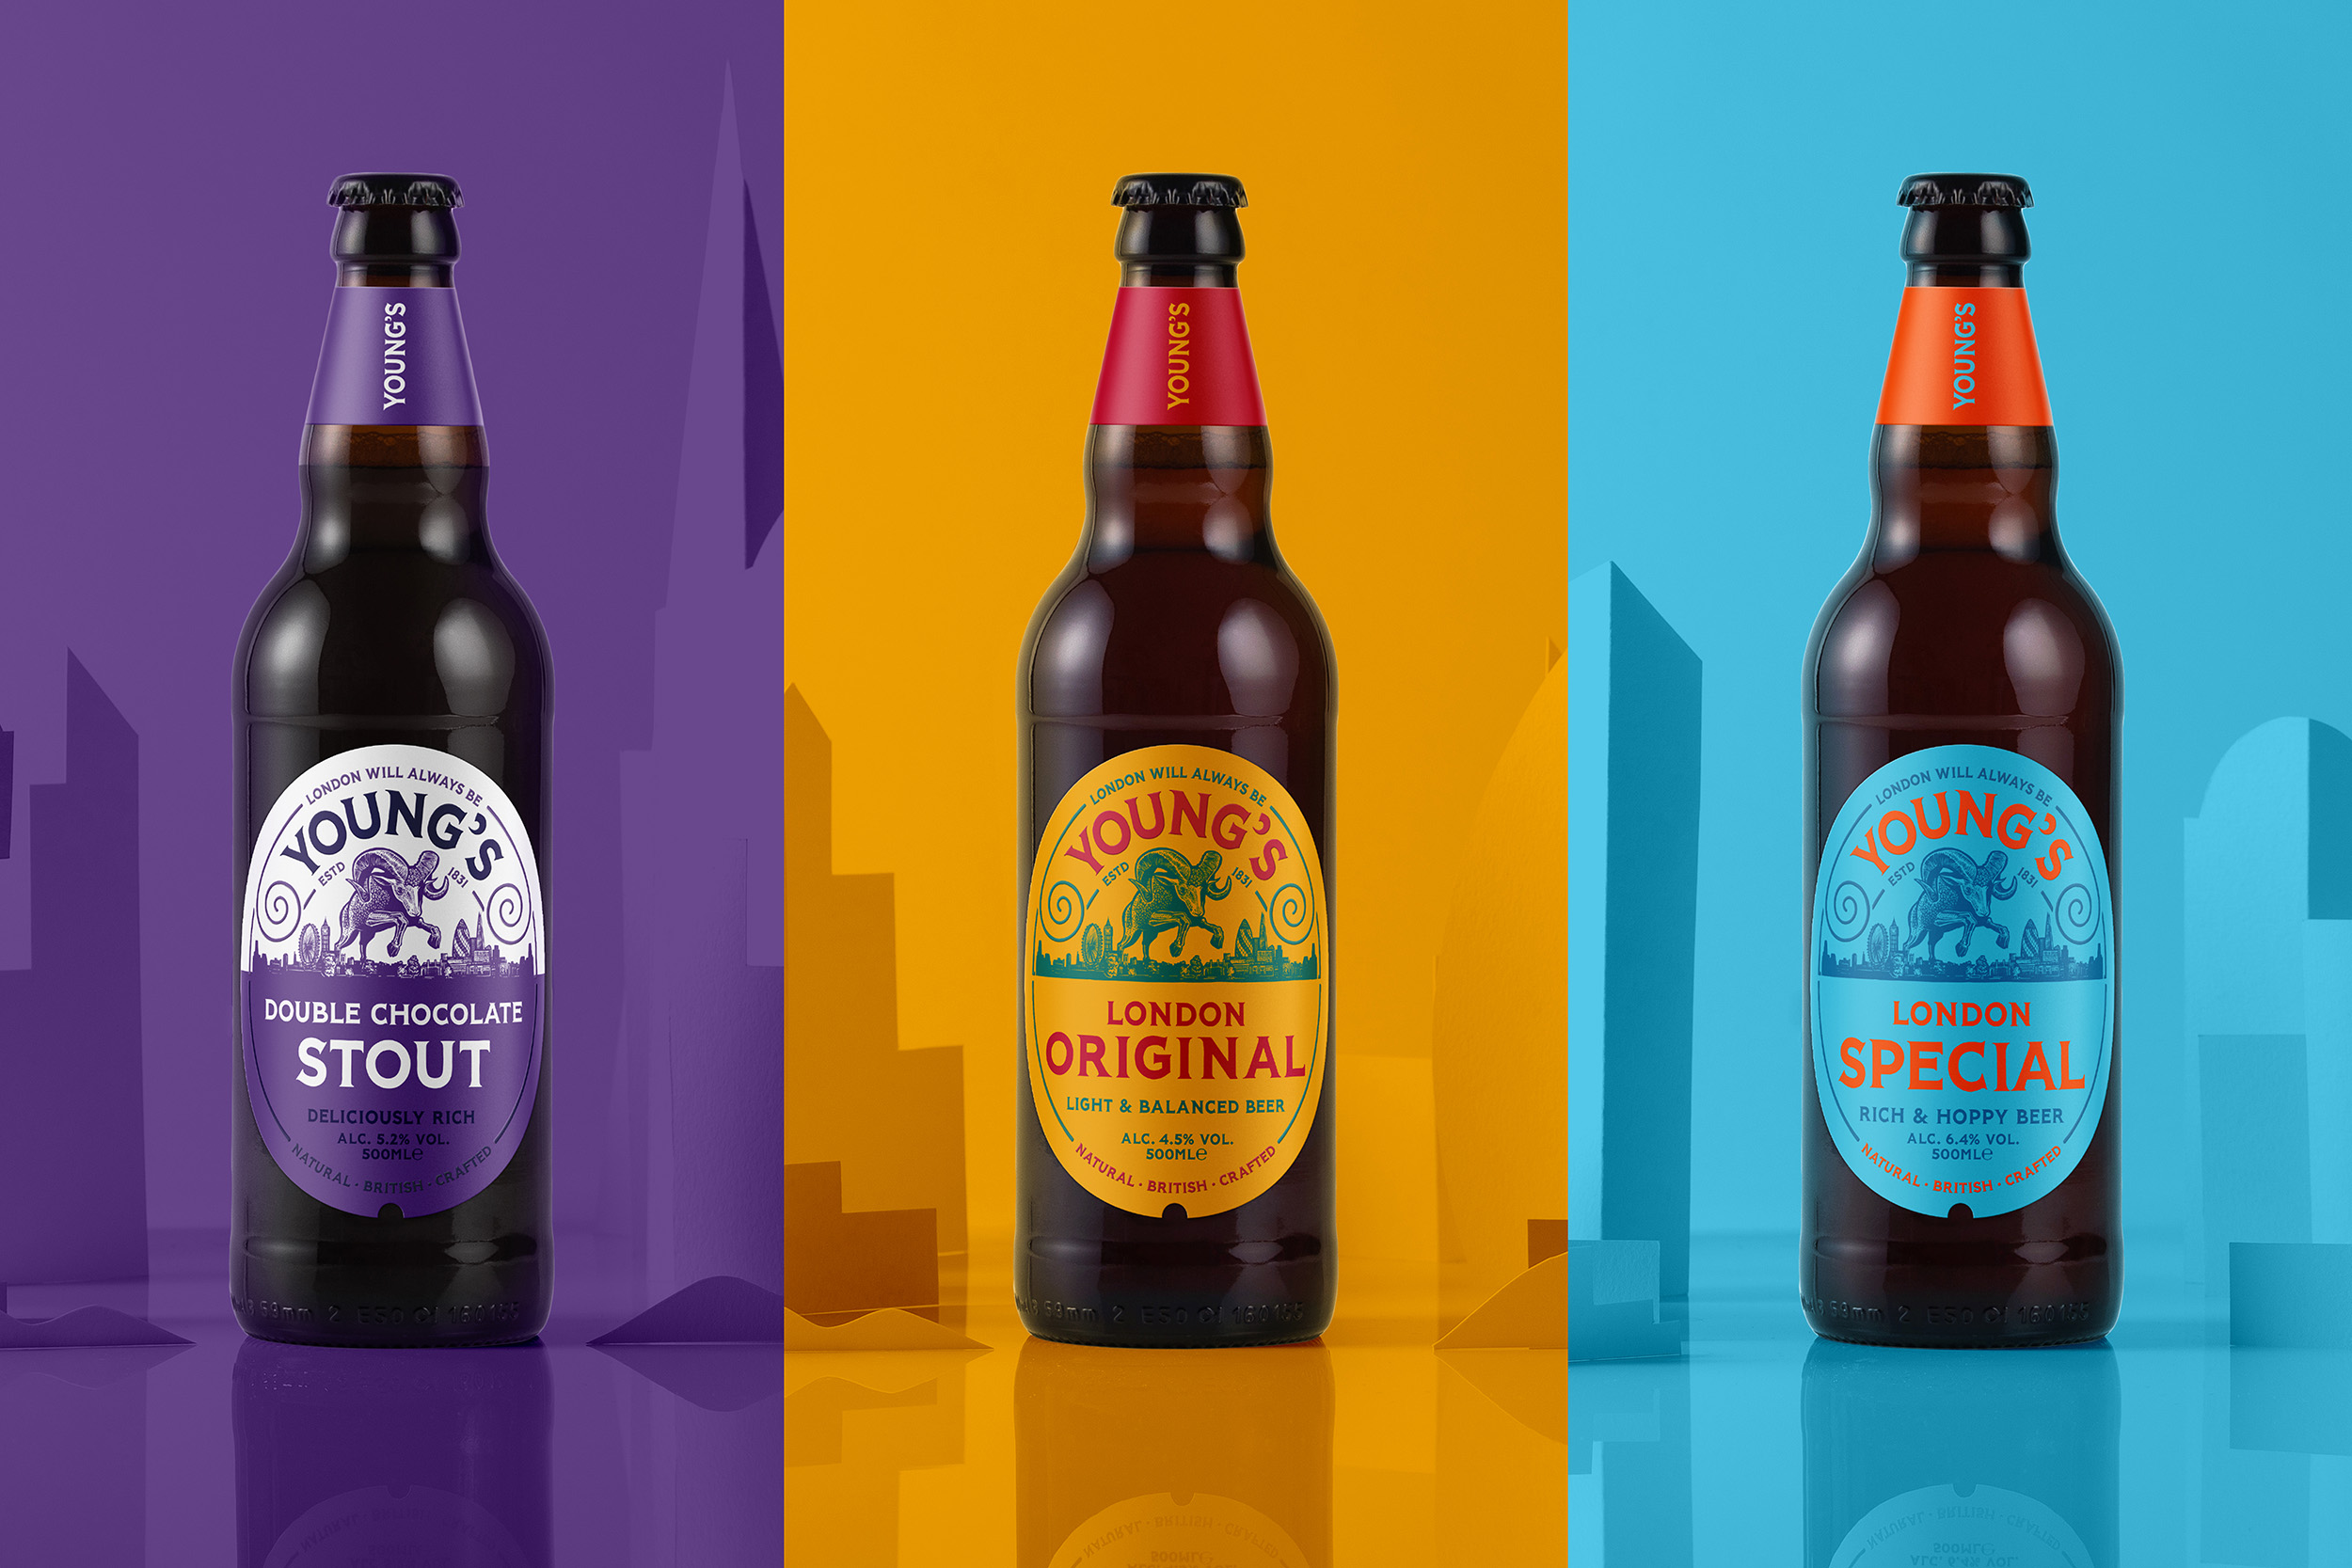 Kingdom & Sparrow Gives a New Lease of Life to Young's Heritage Ale Brand